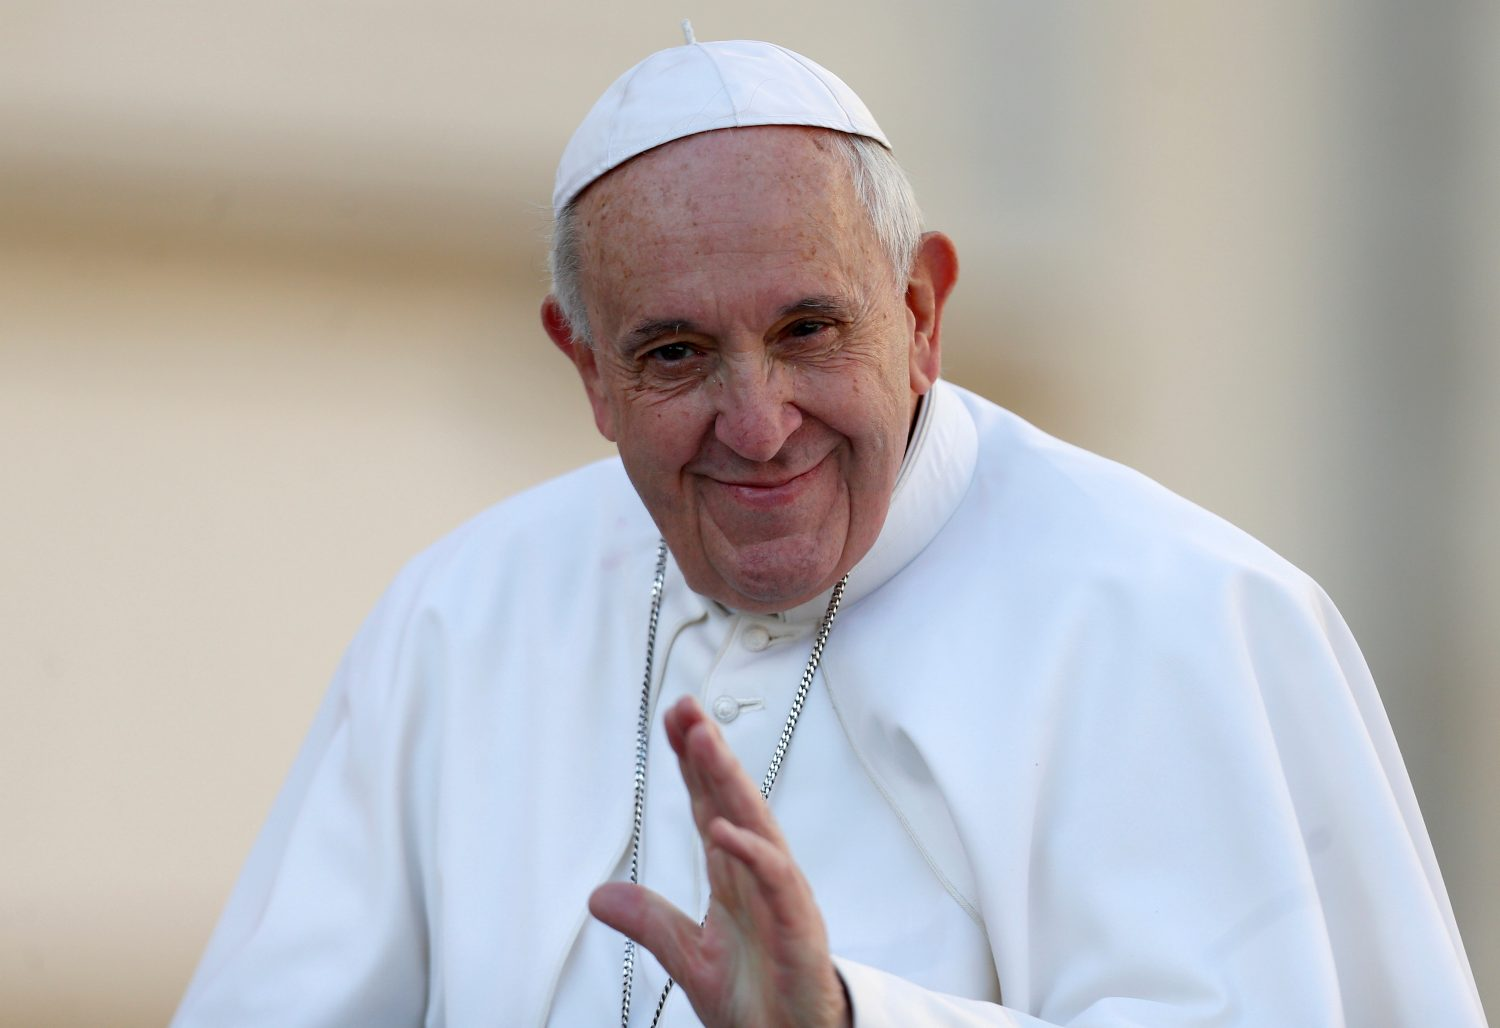 FILE PHOTO: Pope Francis is seen during the weekly audience in Saint Peter's Square, at the Vatican February 27, 2019. REUTERS/Yara Nardi/File Photo